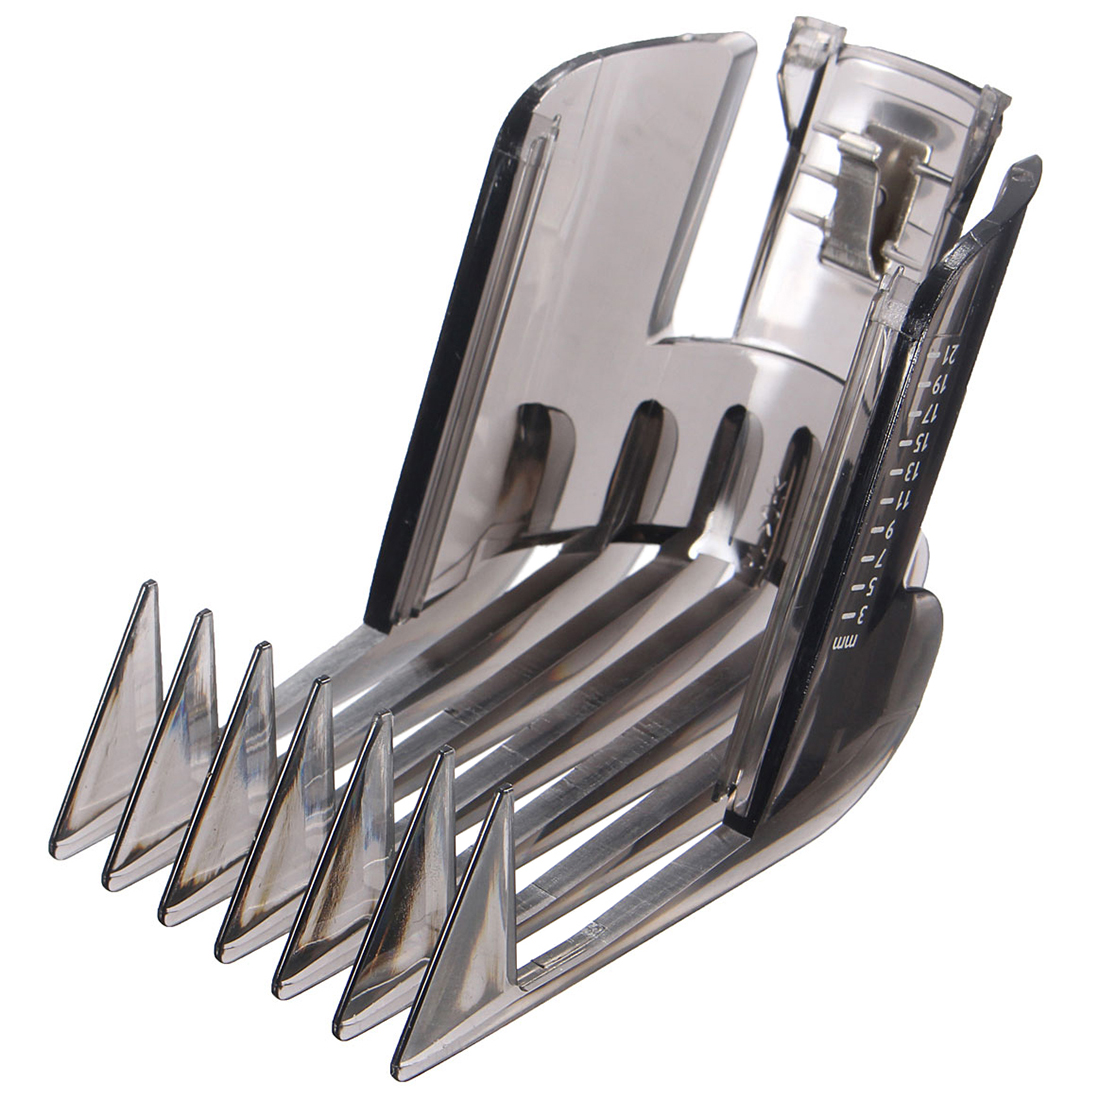 YOST-Hair Clippers Beard Trimmer comb attachment for Philips QC5130 / 05/15/20/25/35 3-21mm 1